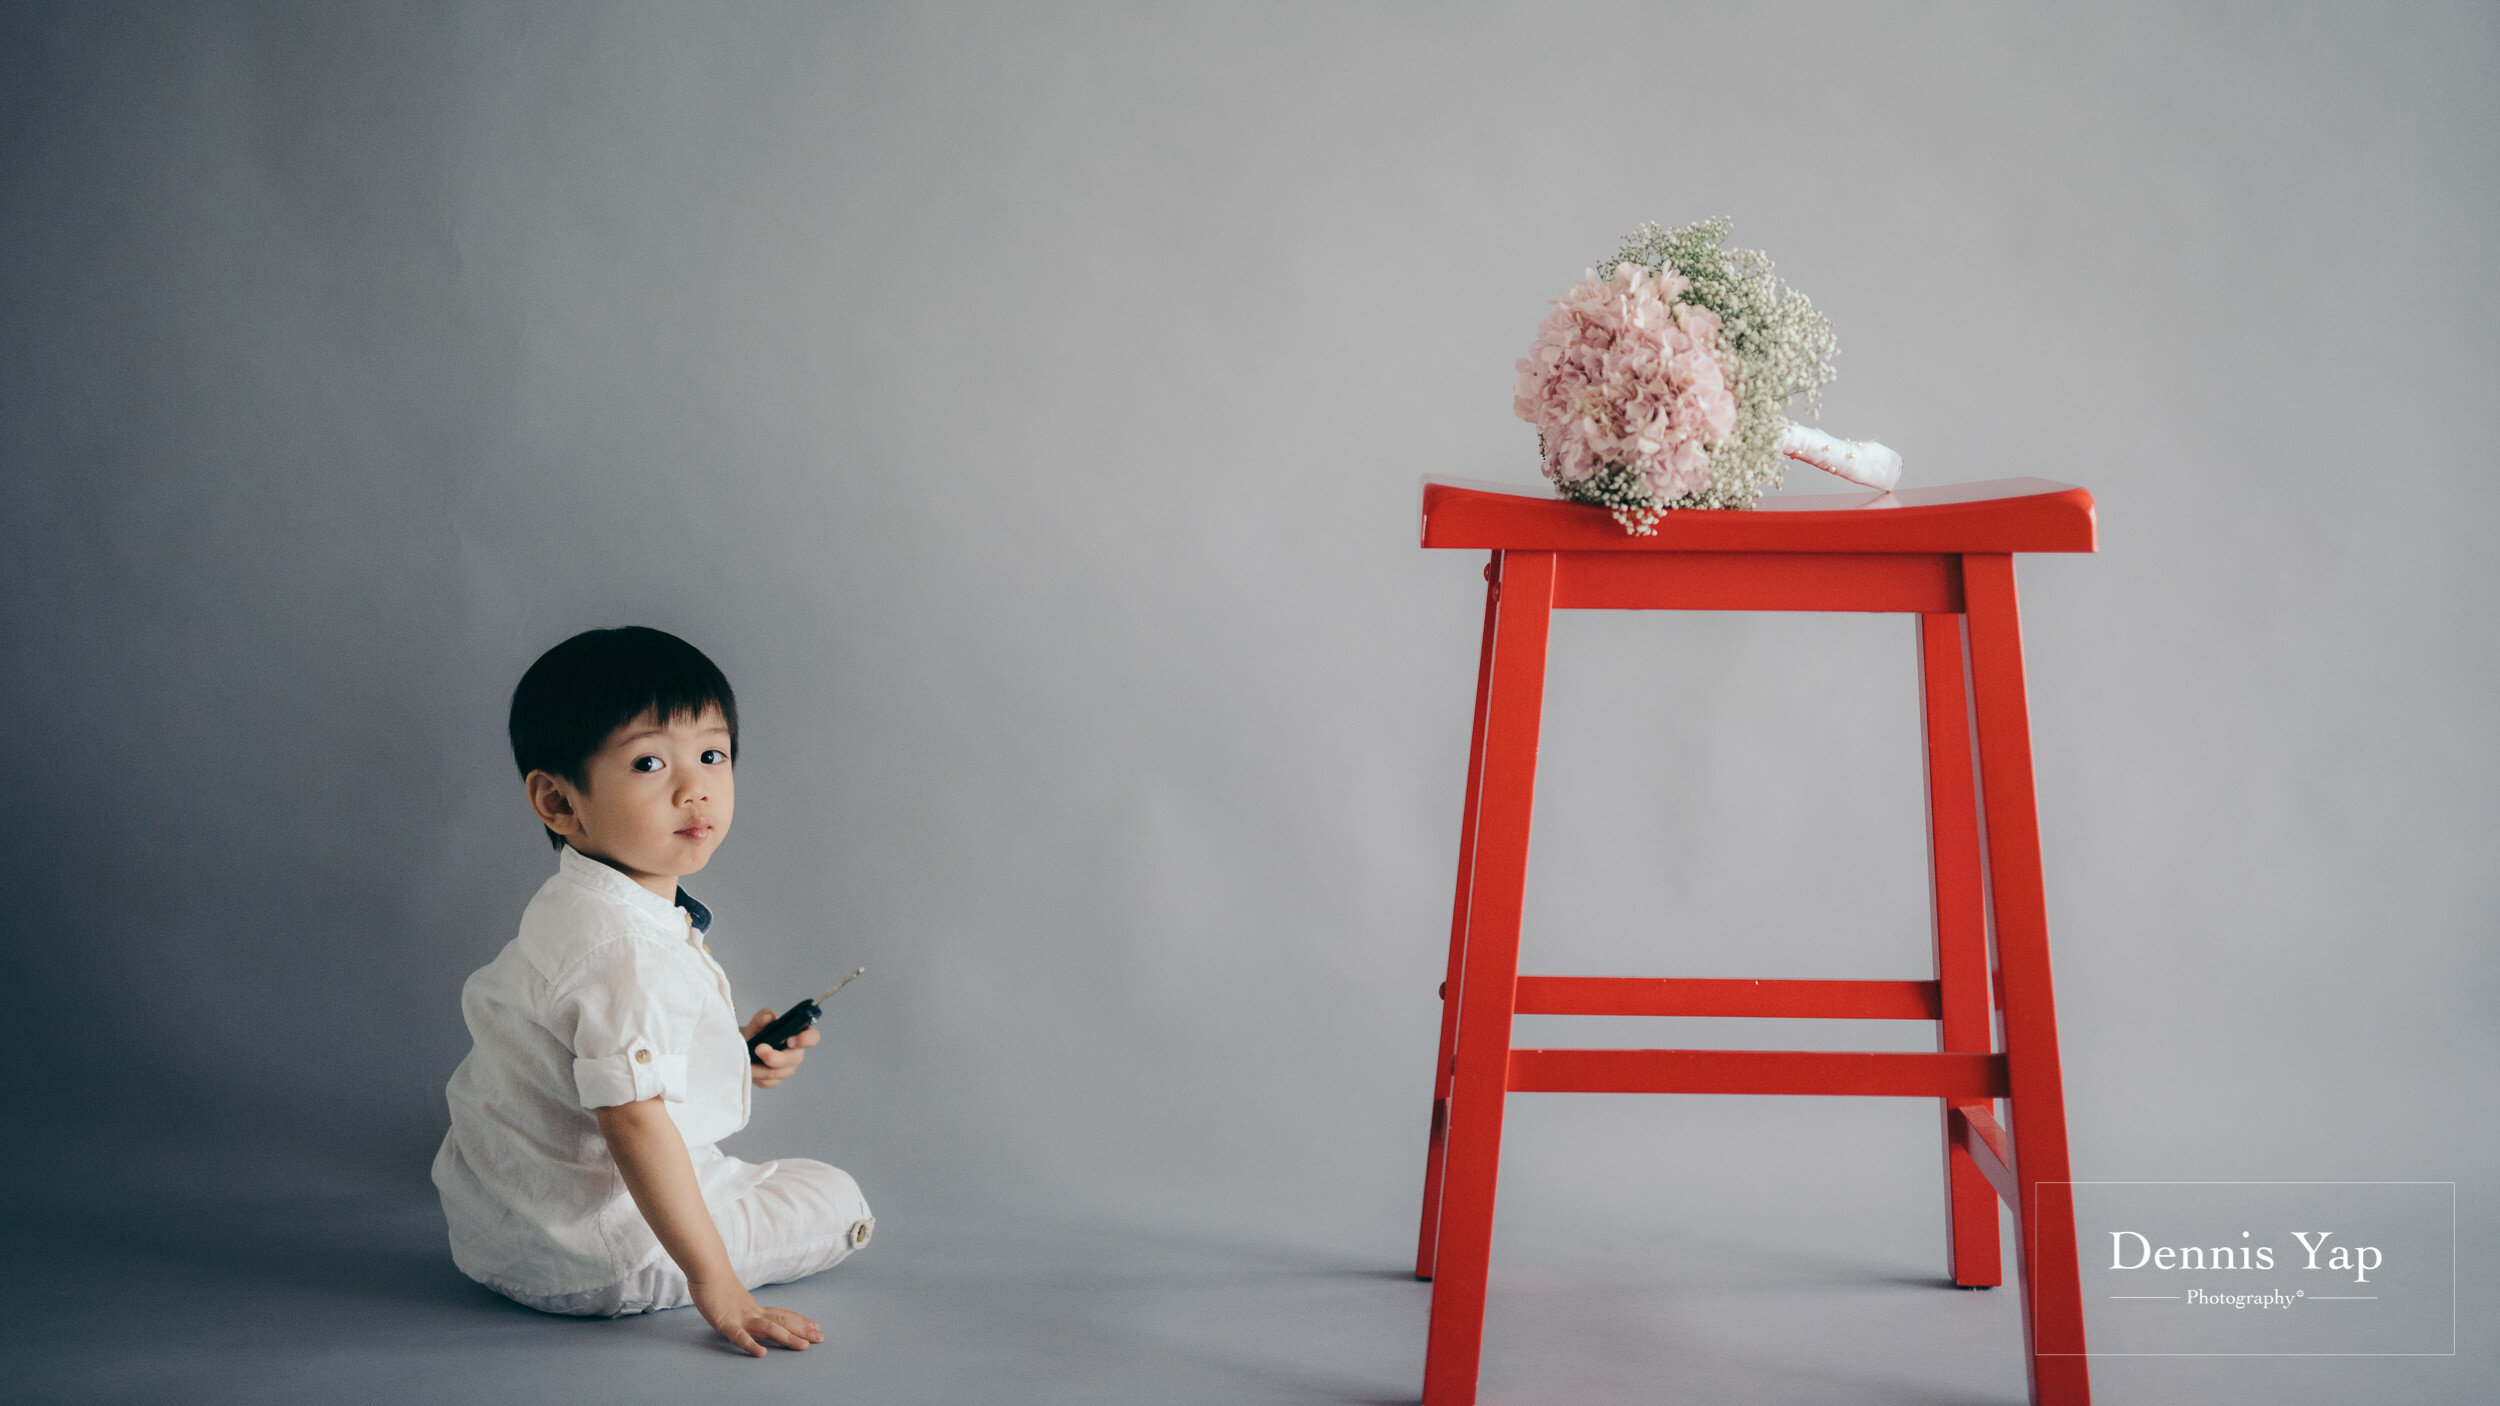 hwee jenna family maternity portrait portrait dennis yap photography beloved studio indoor-111.jpg